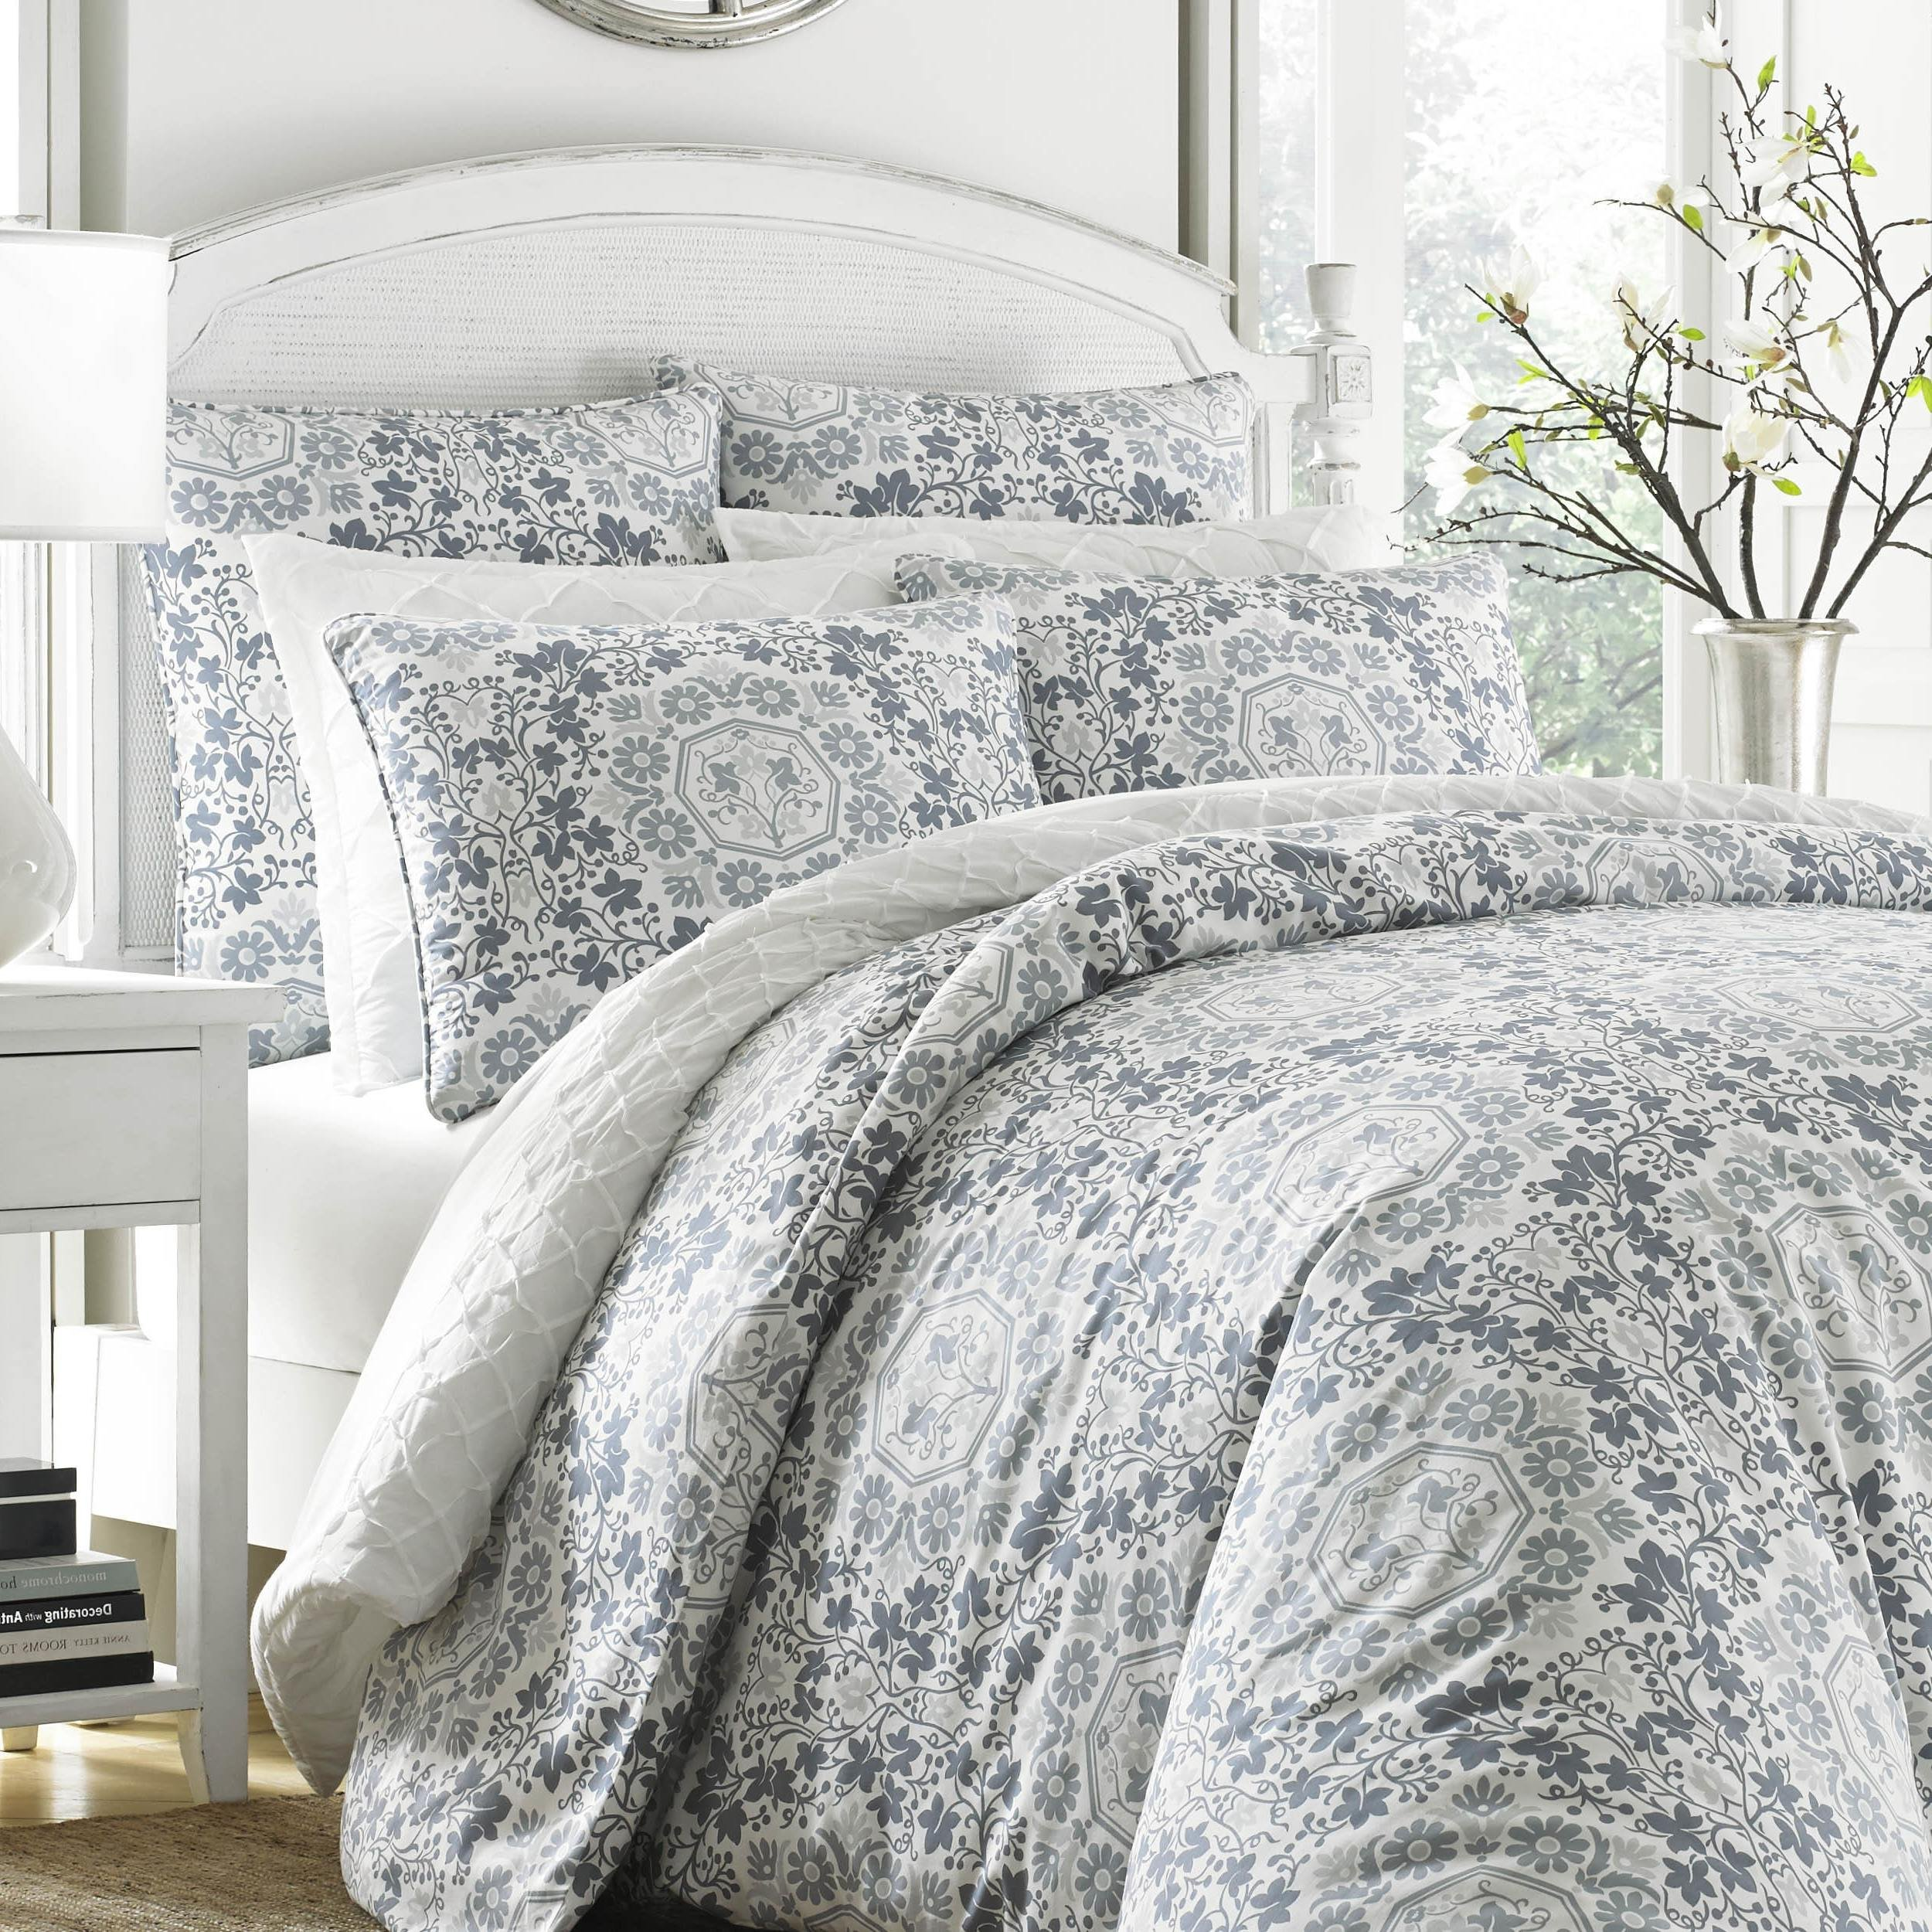 3 Piece Blue Grey Floral King Size Duvet Cover Set, Beautiful Geometrical Medallion Paisley Damask Flowers, Shabby Chic Bohemian White Modern Geometric Reversible Bedding, Cotton, Sateen Cotton